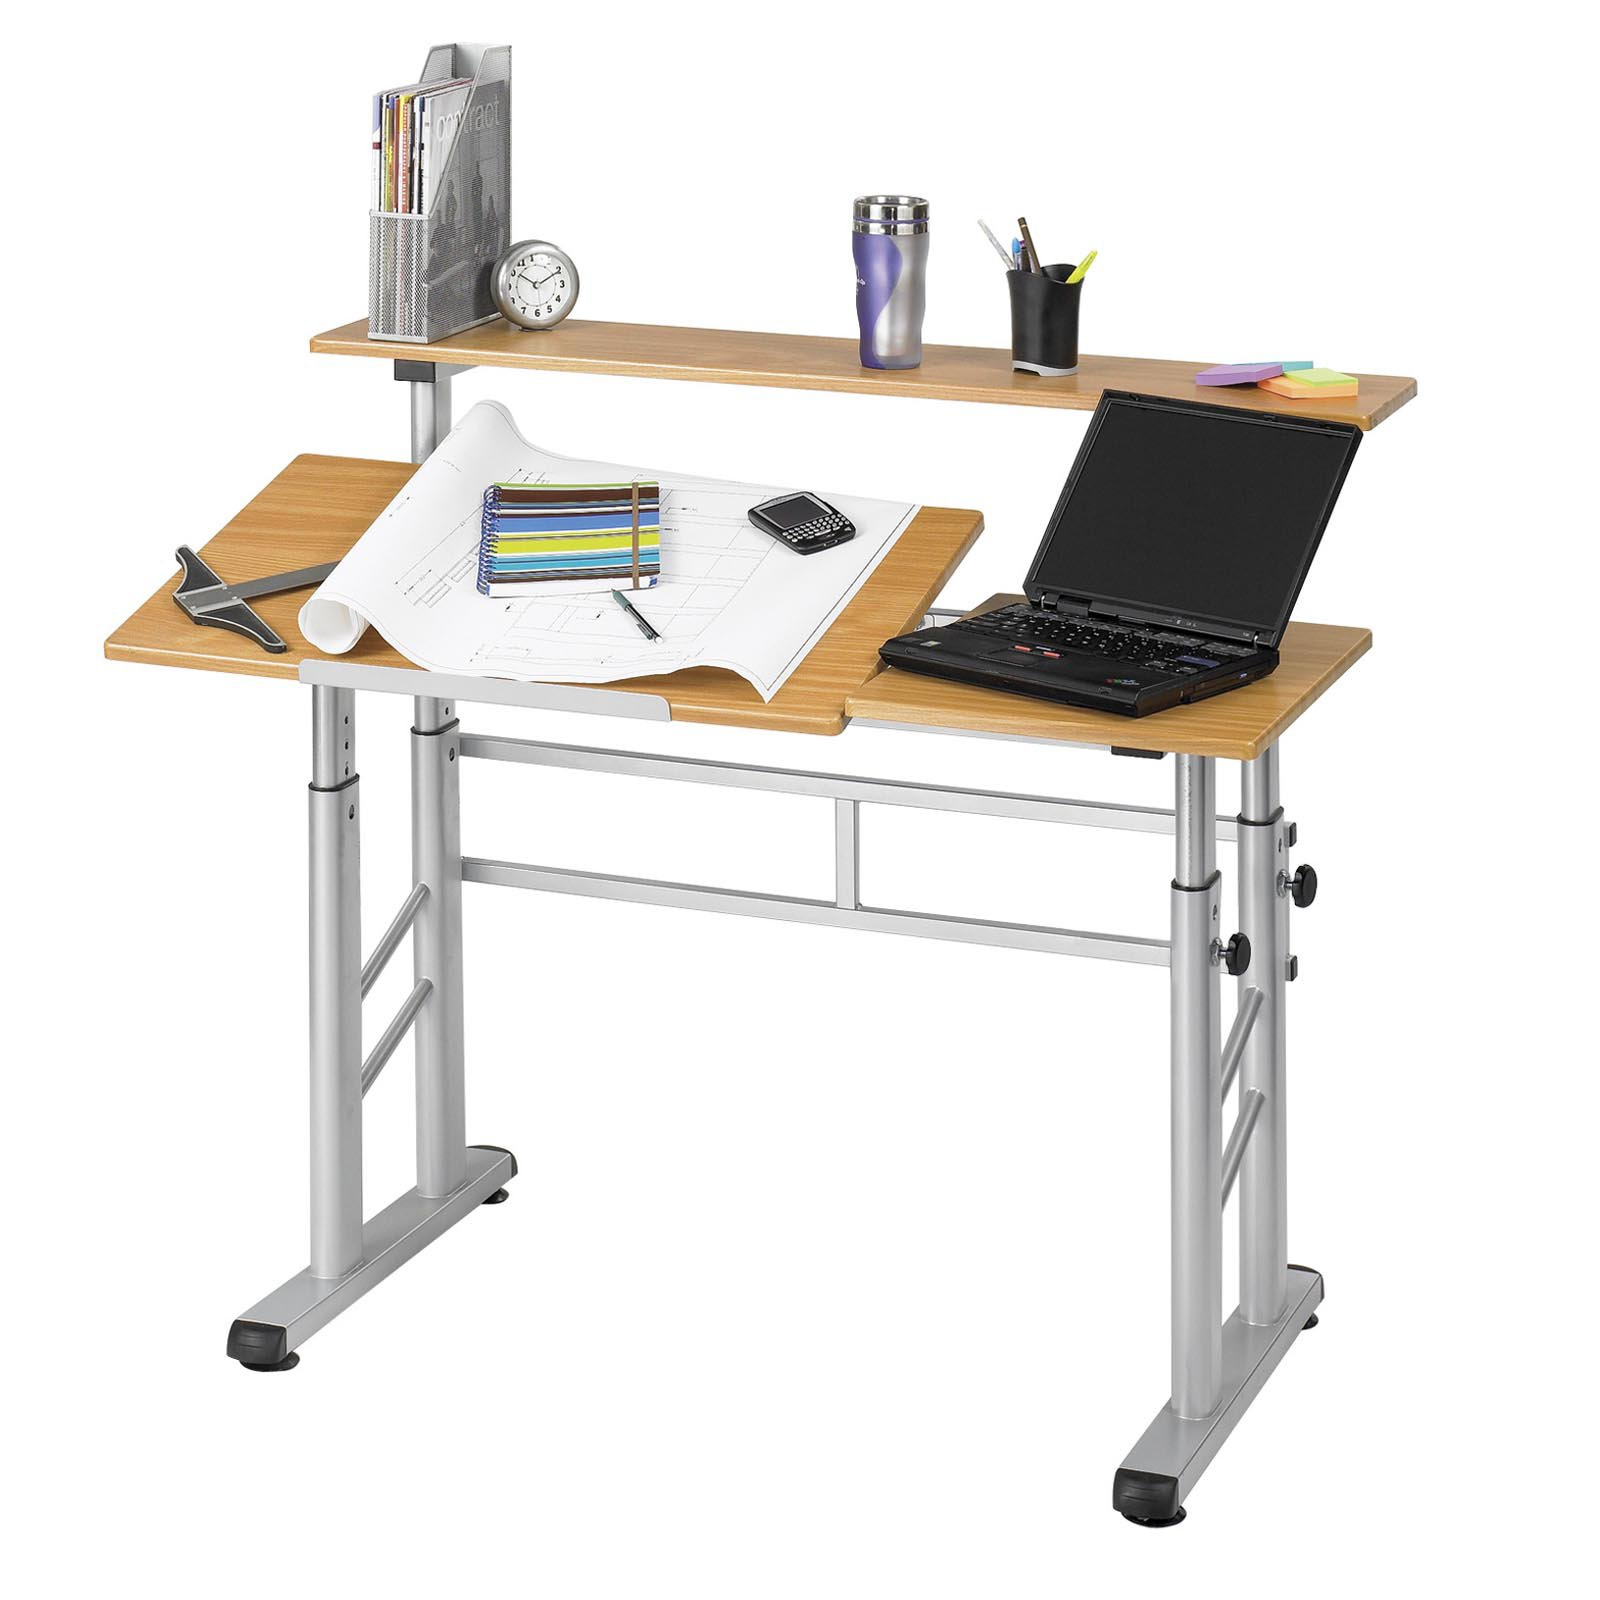 Safco | Safco Muv Stand Up Adjustable Height Workstation | Safco Ergo Comfort Adjustable Footrest